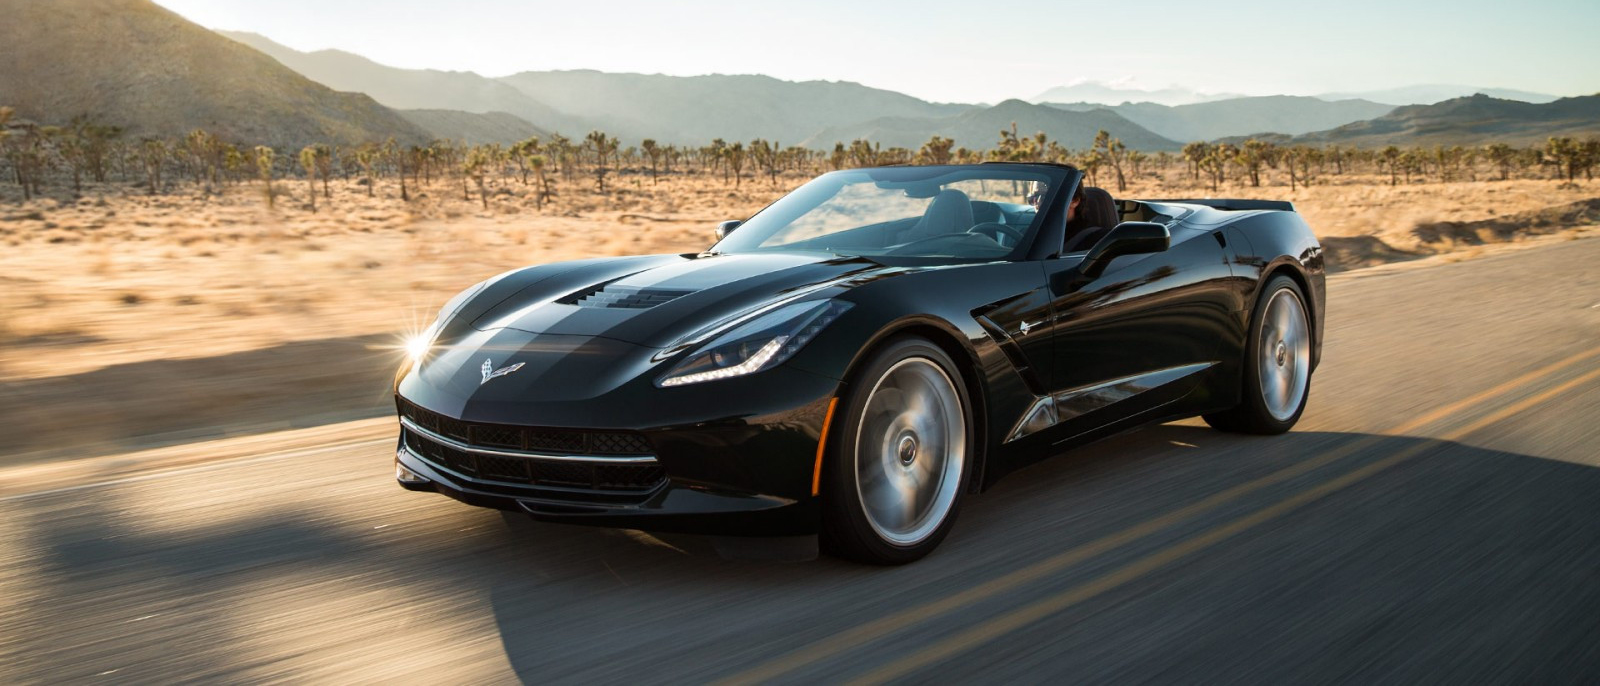 2017 Corvette Stingray black